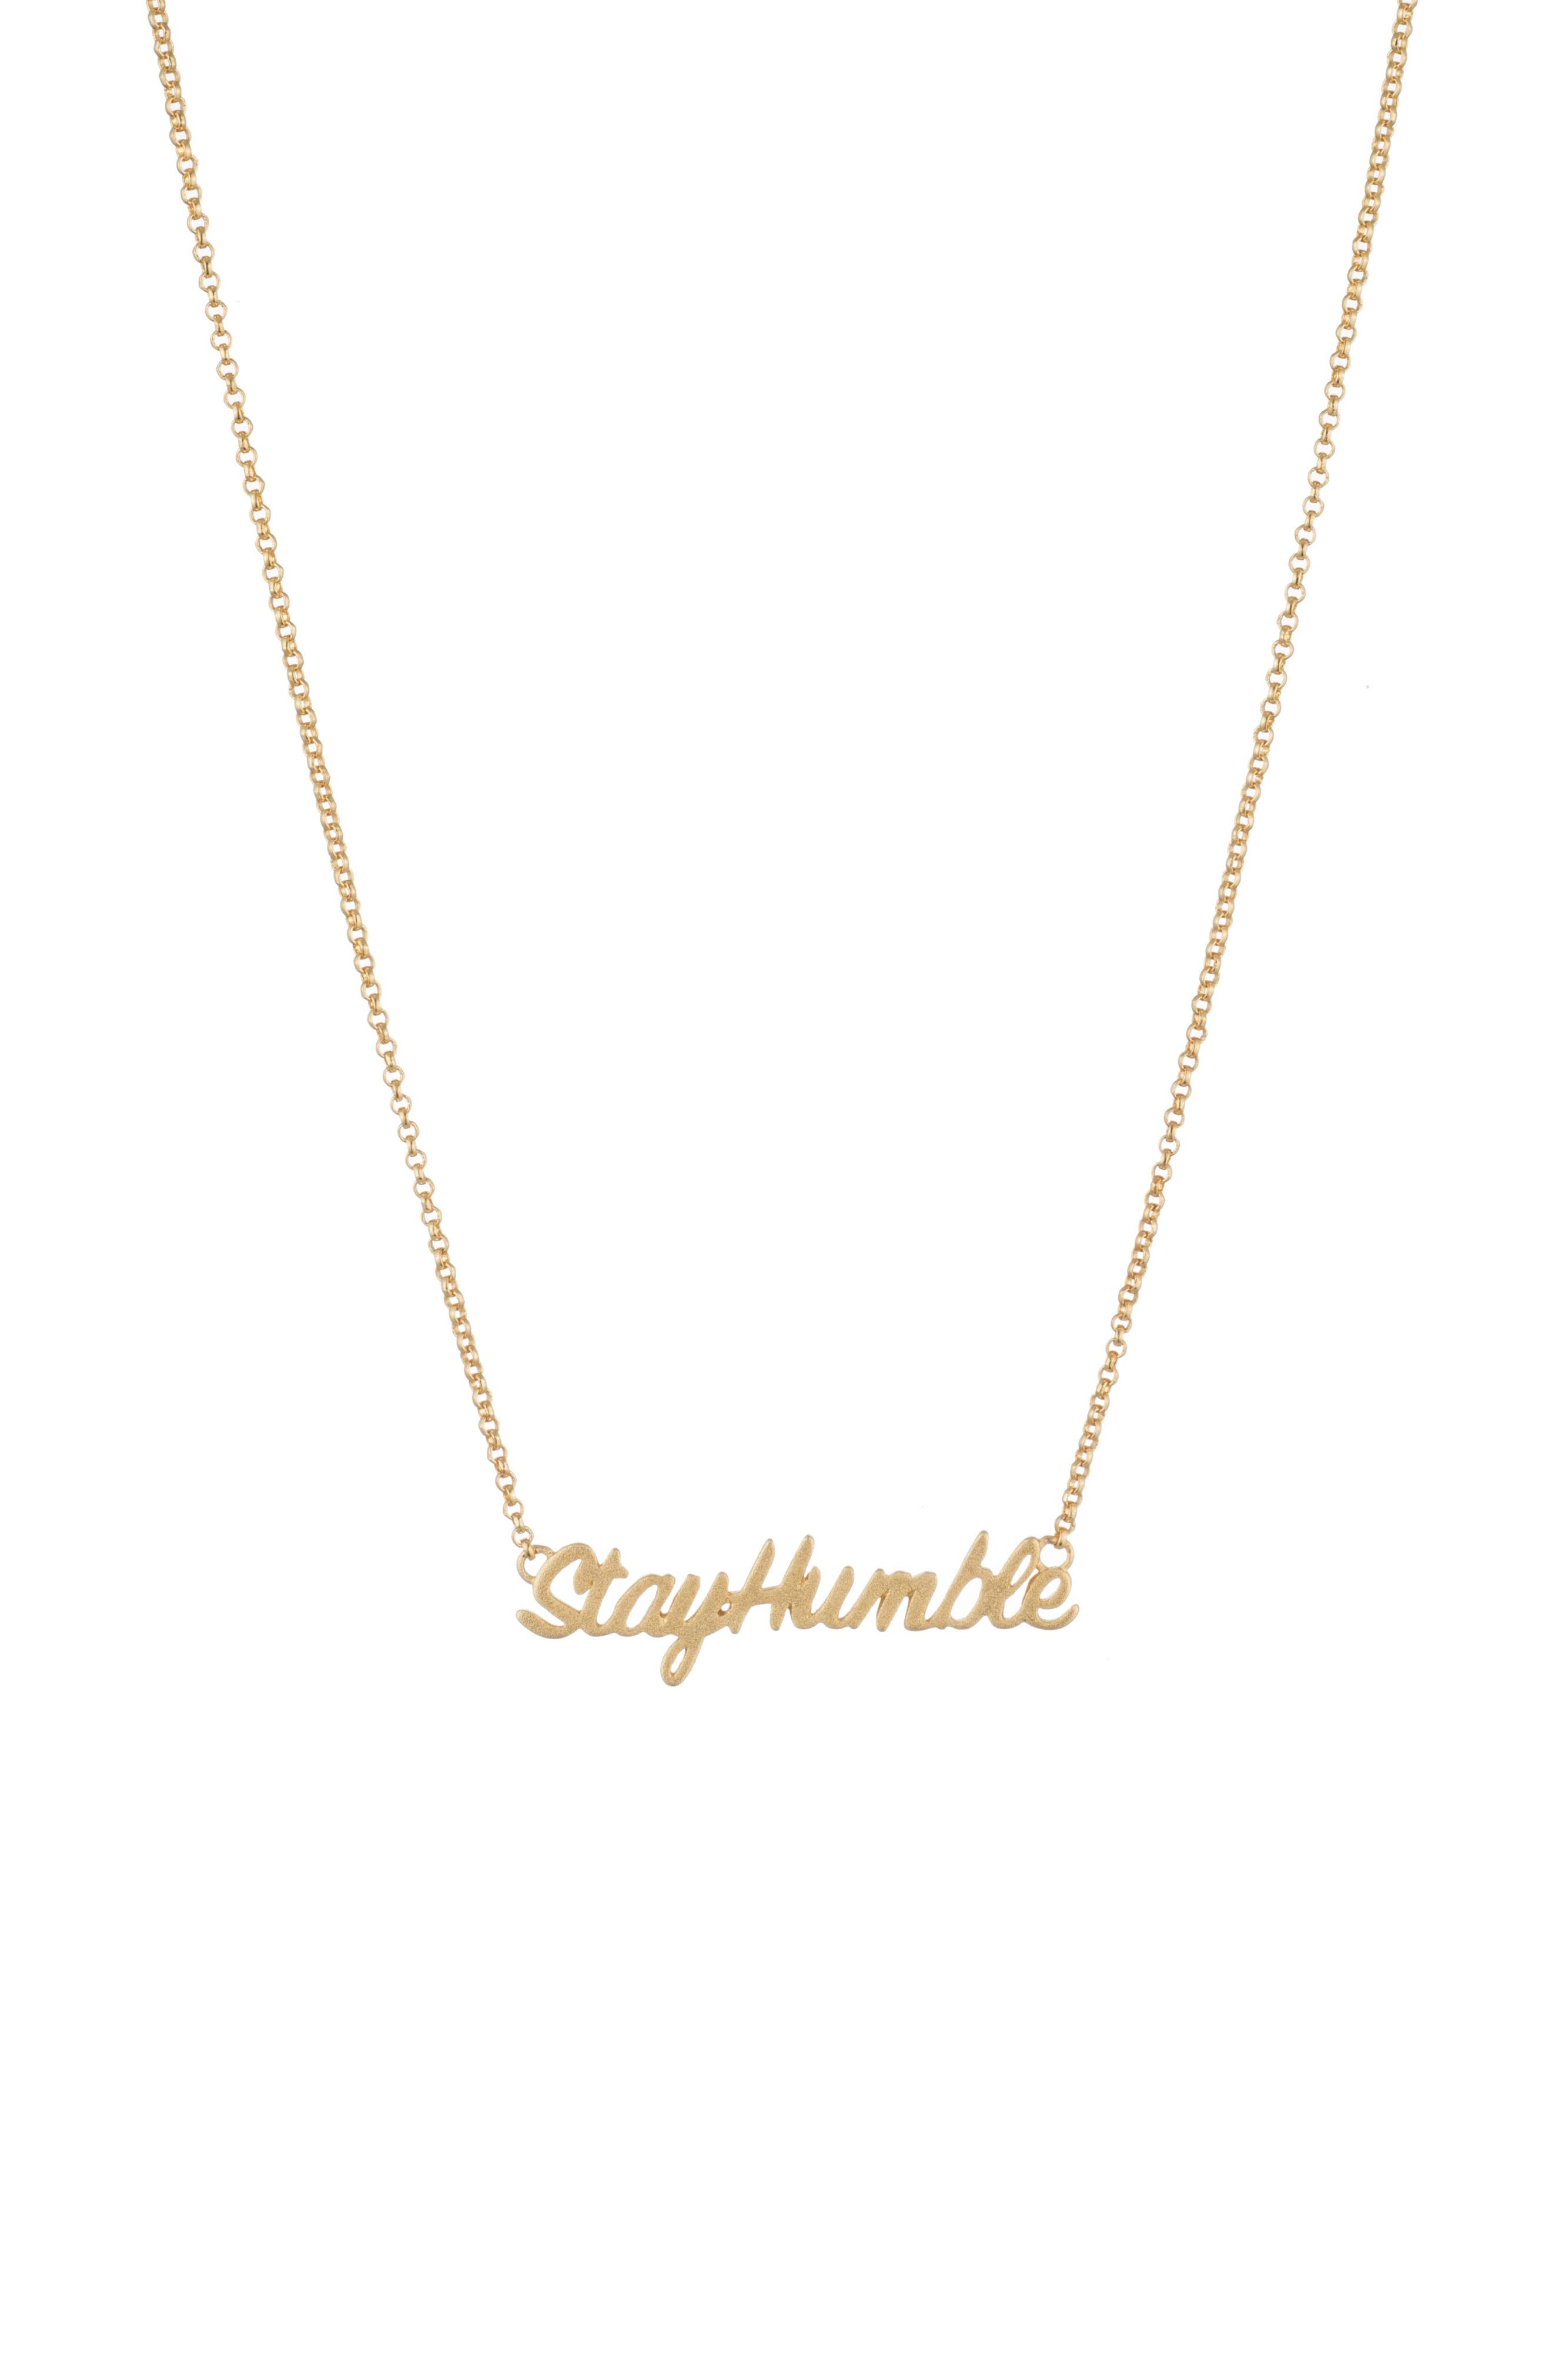 Stay Humble Necklace,                             Main thumbnail 2, color,